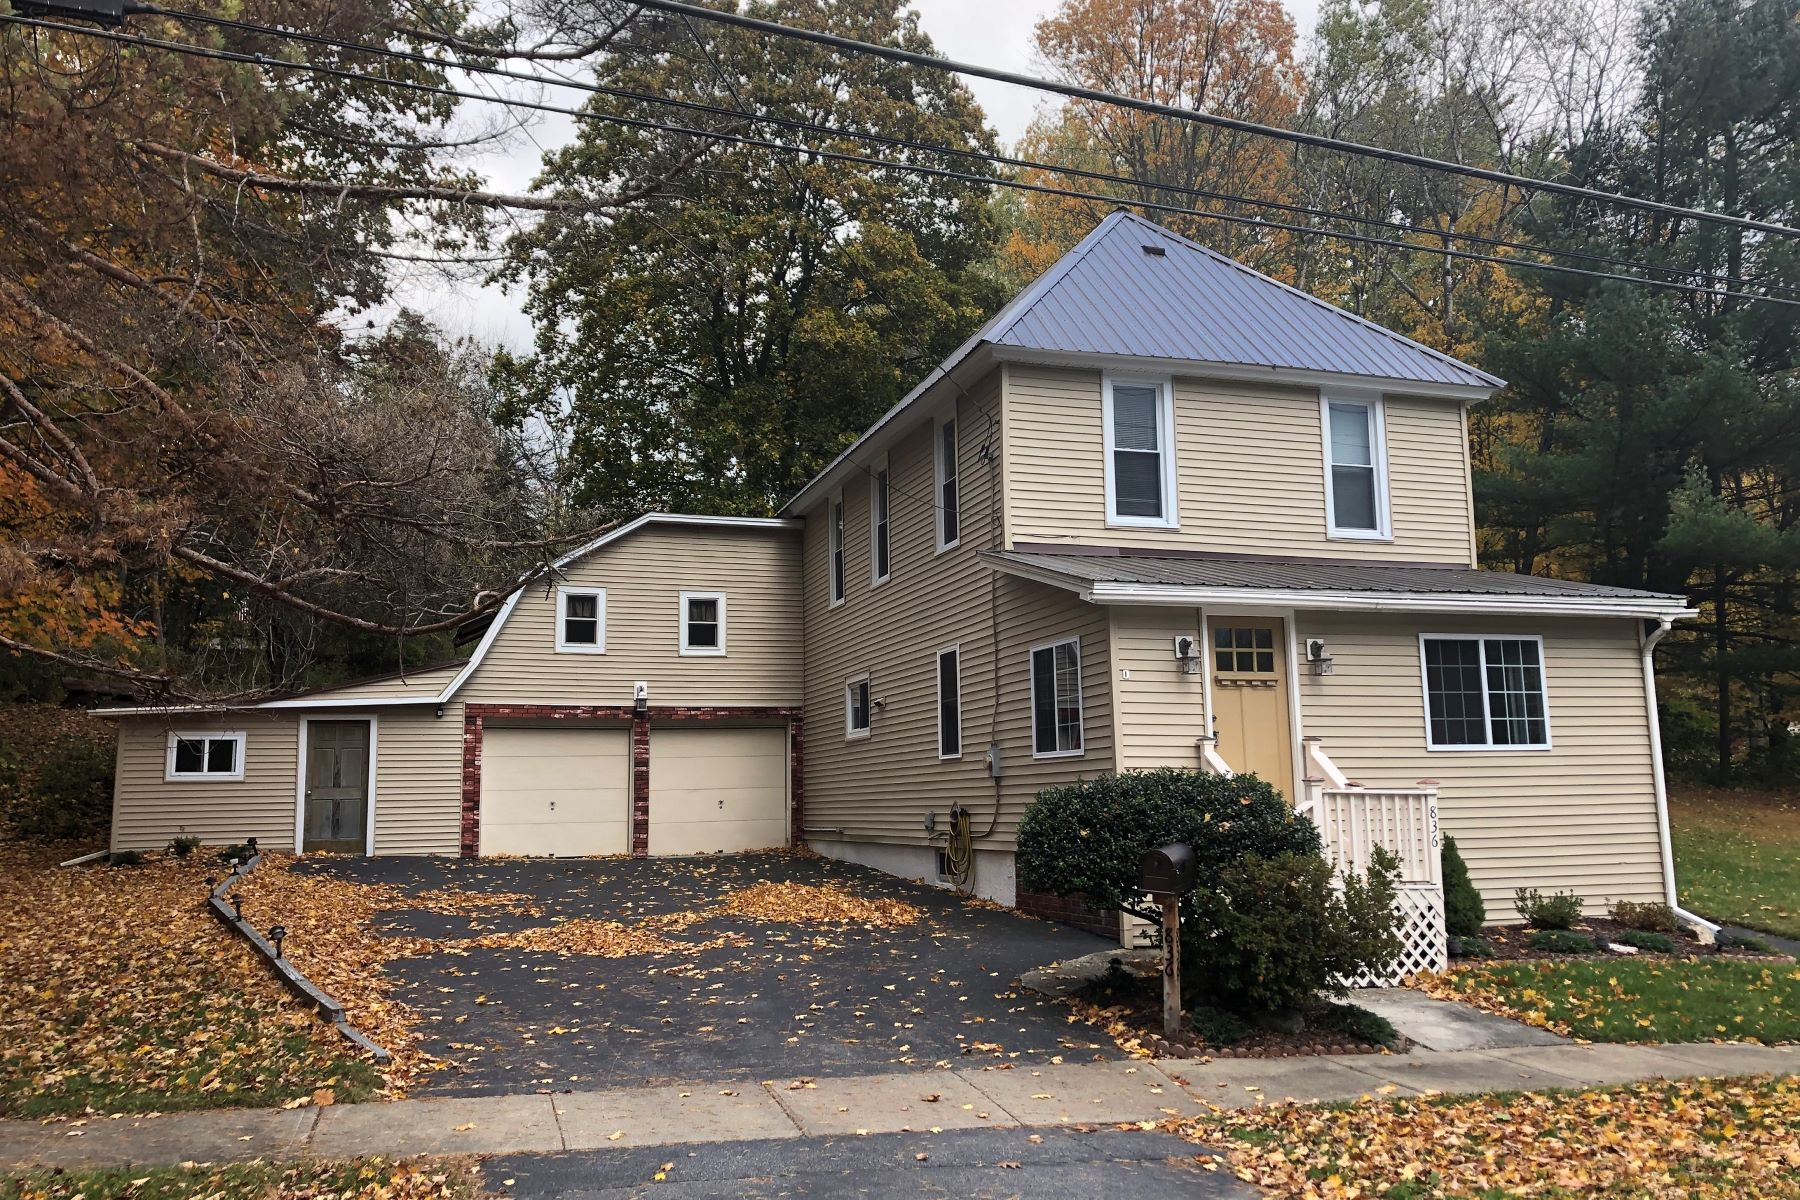 Single Family Homes für Verkauf beim Move In Ready Spacious Home 836 Glebe St, Johnstown, New York 12095 Vereinigte Staaten